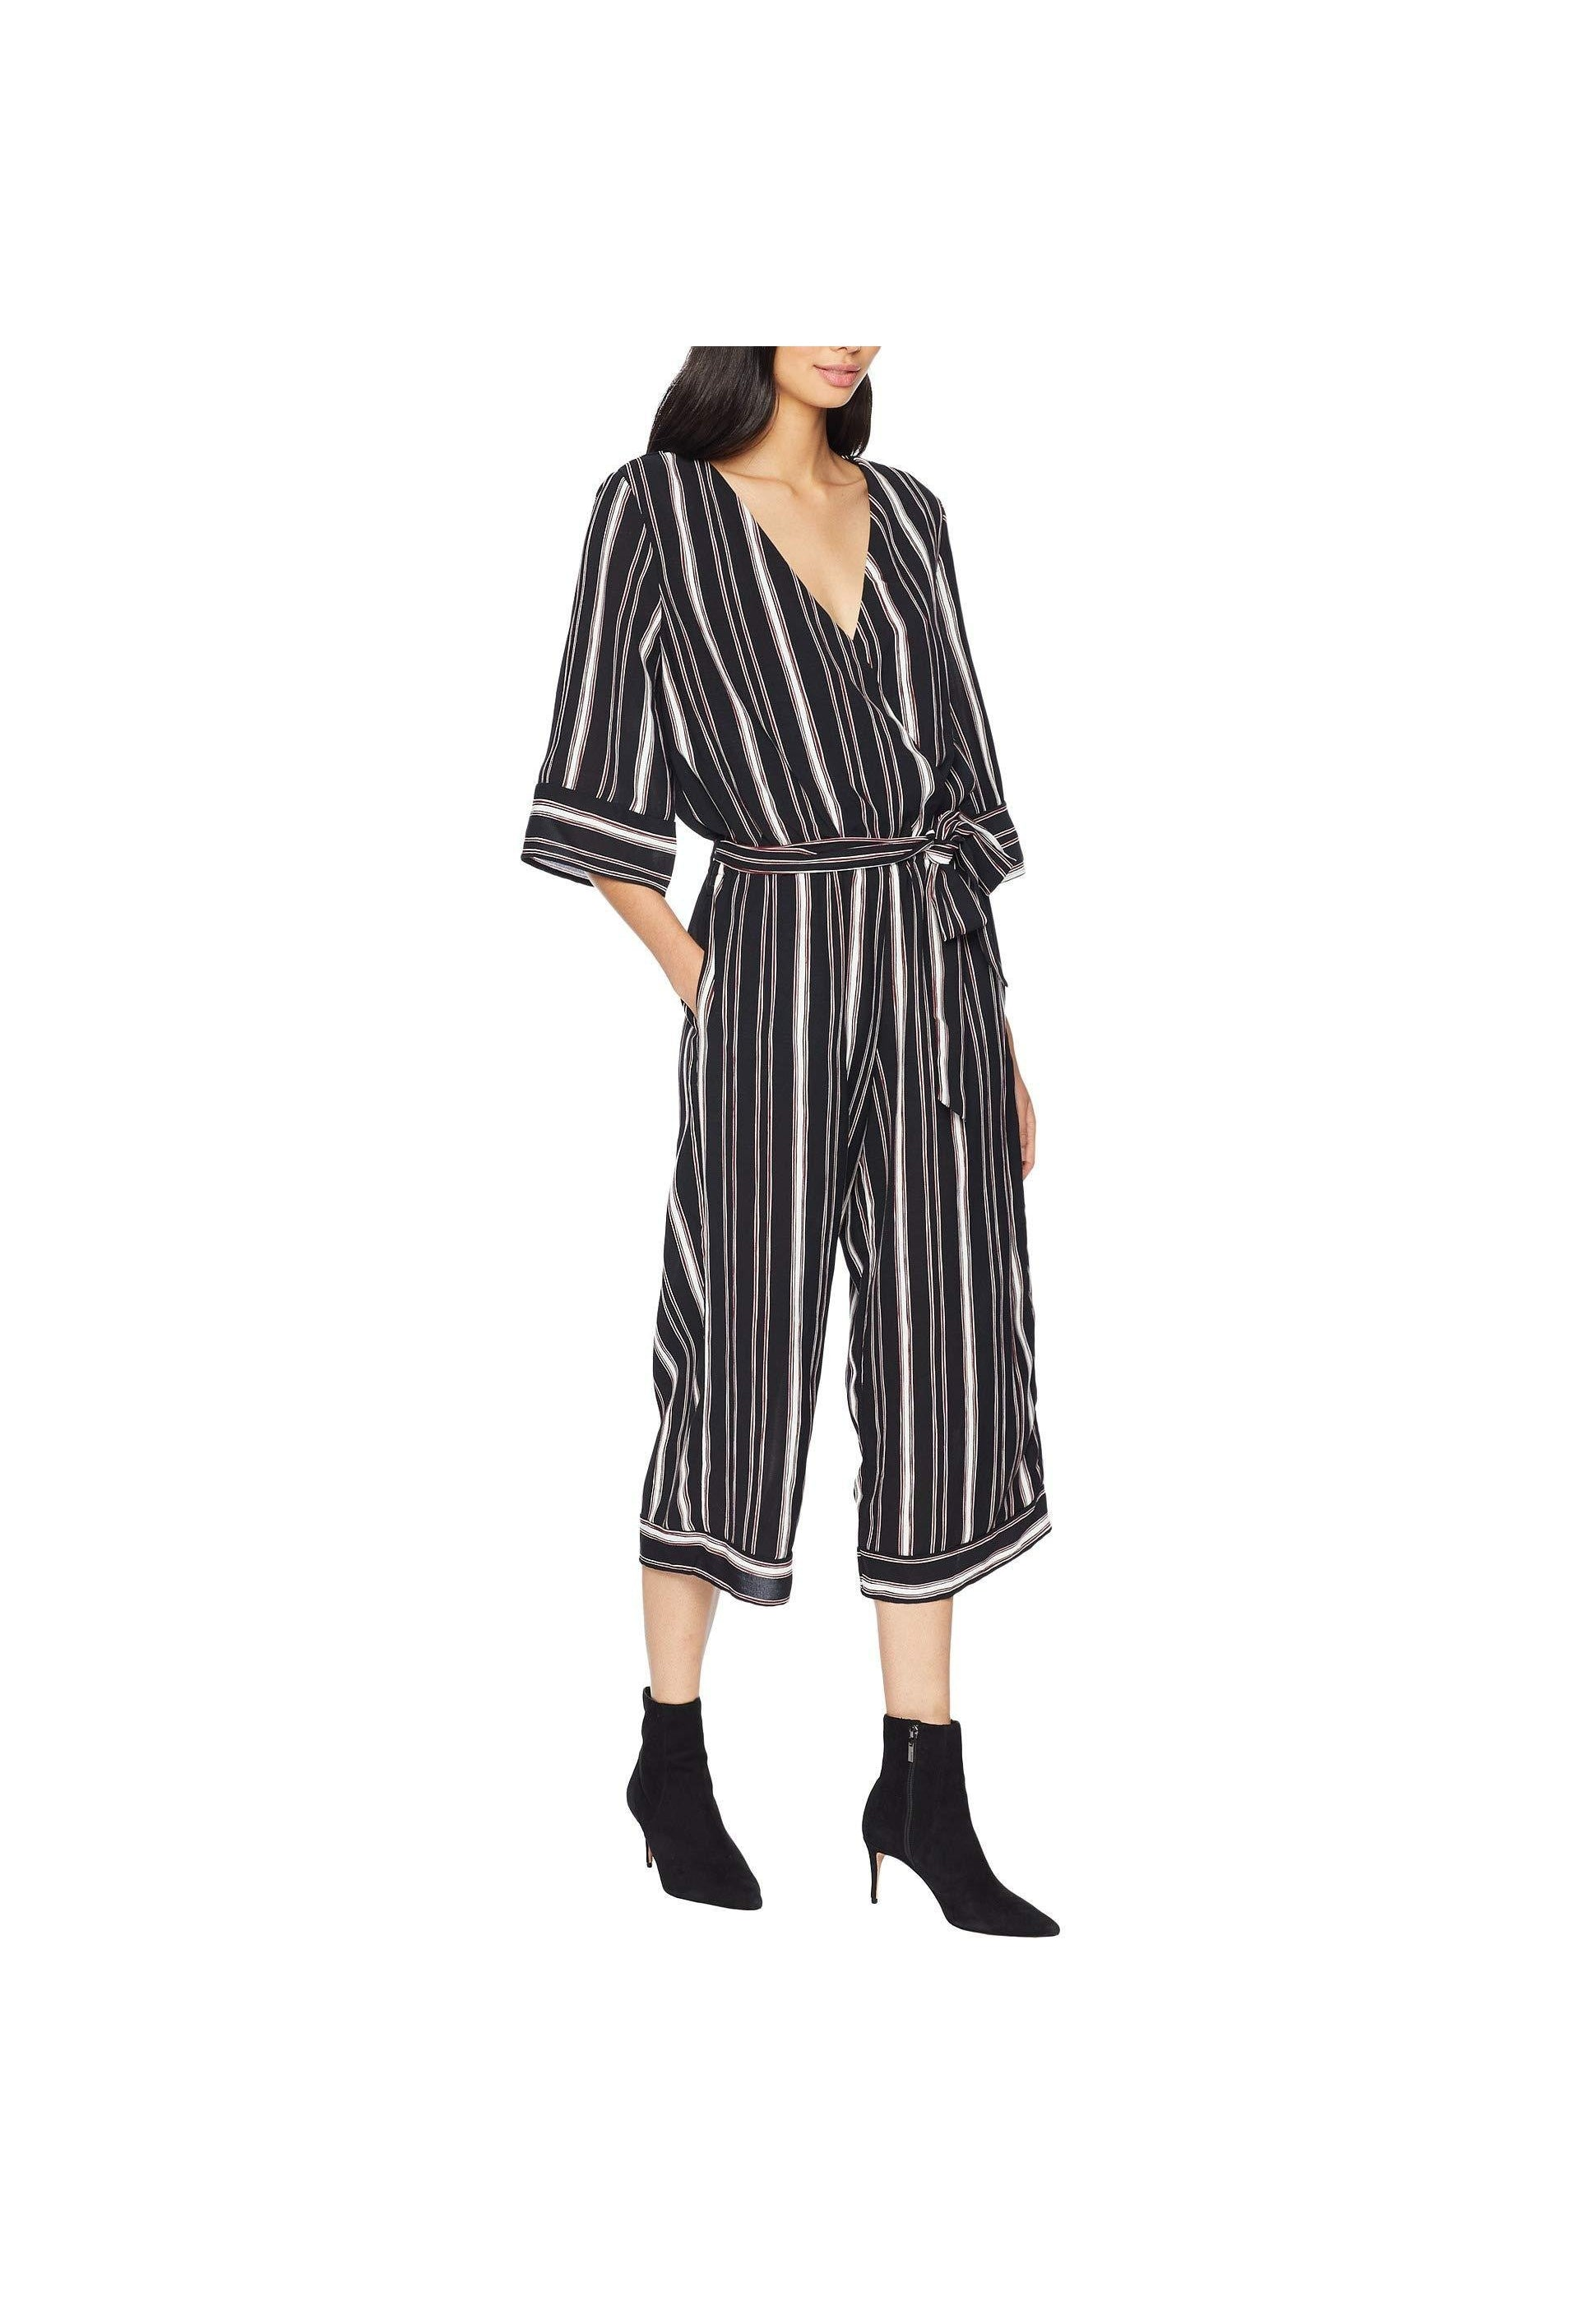 Bishop + Young Stripe Romper